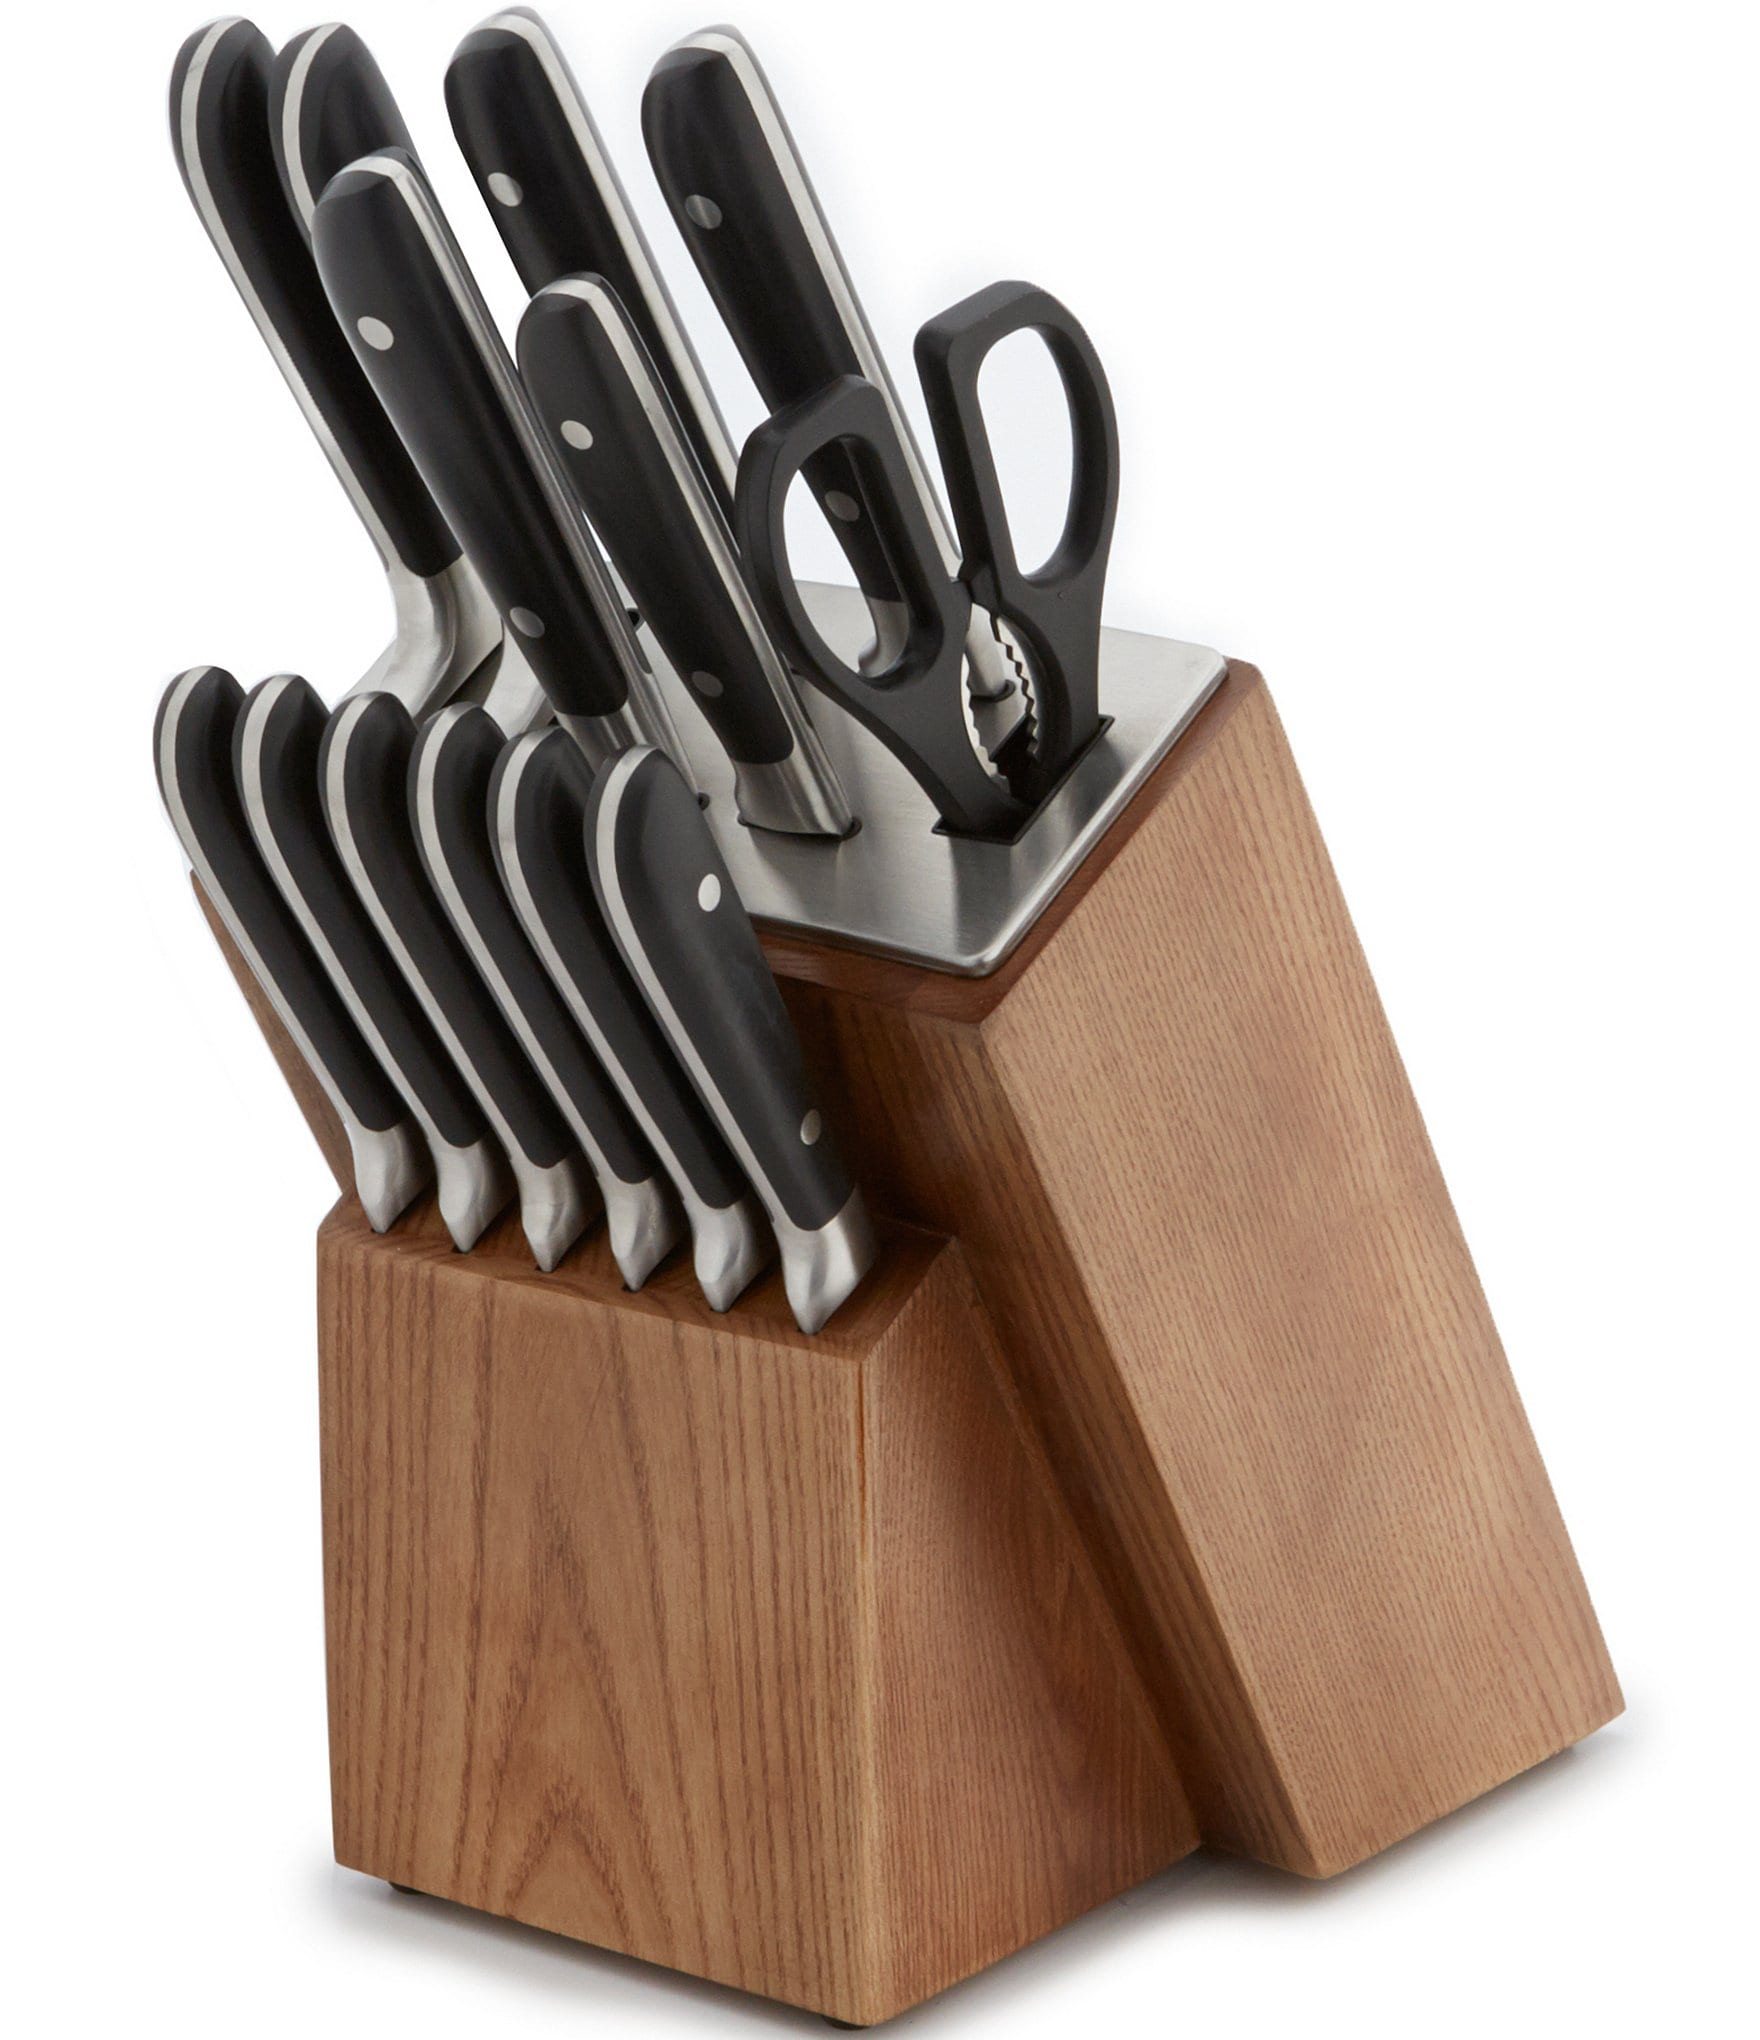 Southern Living 14 Piece Riveted Cutlery Set With Ash Wood